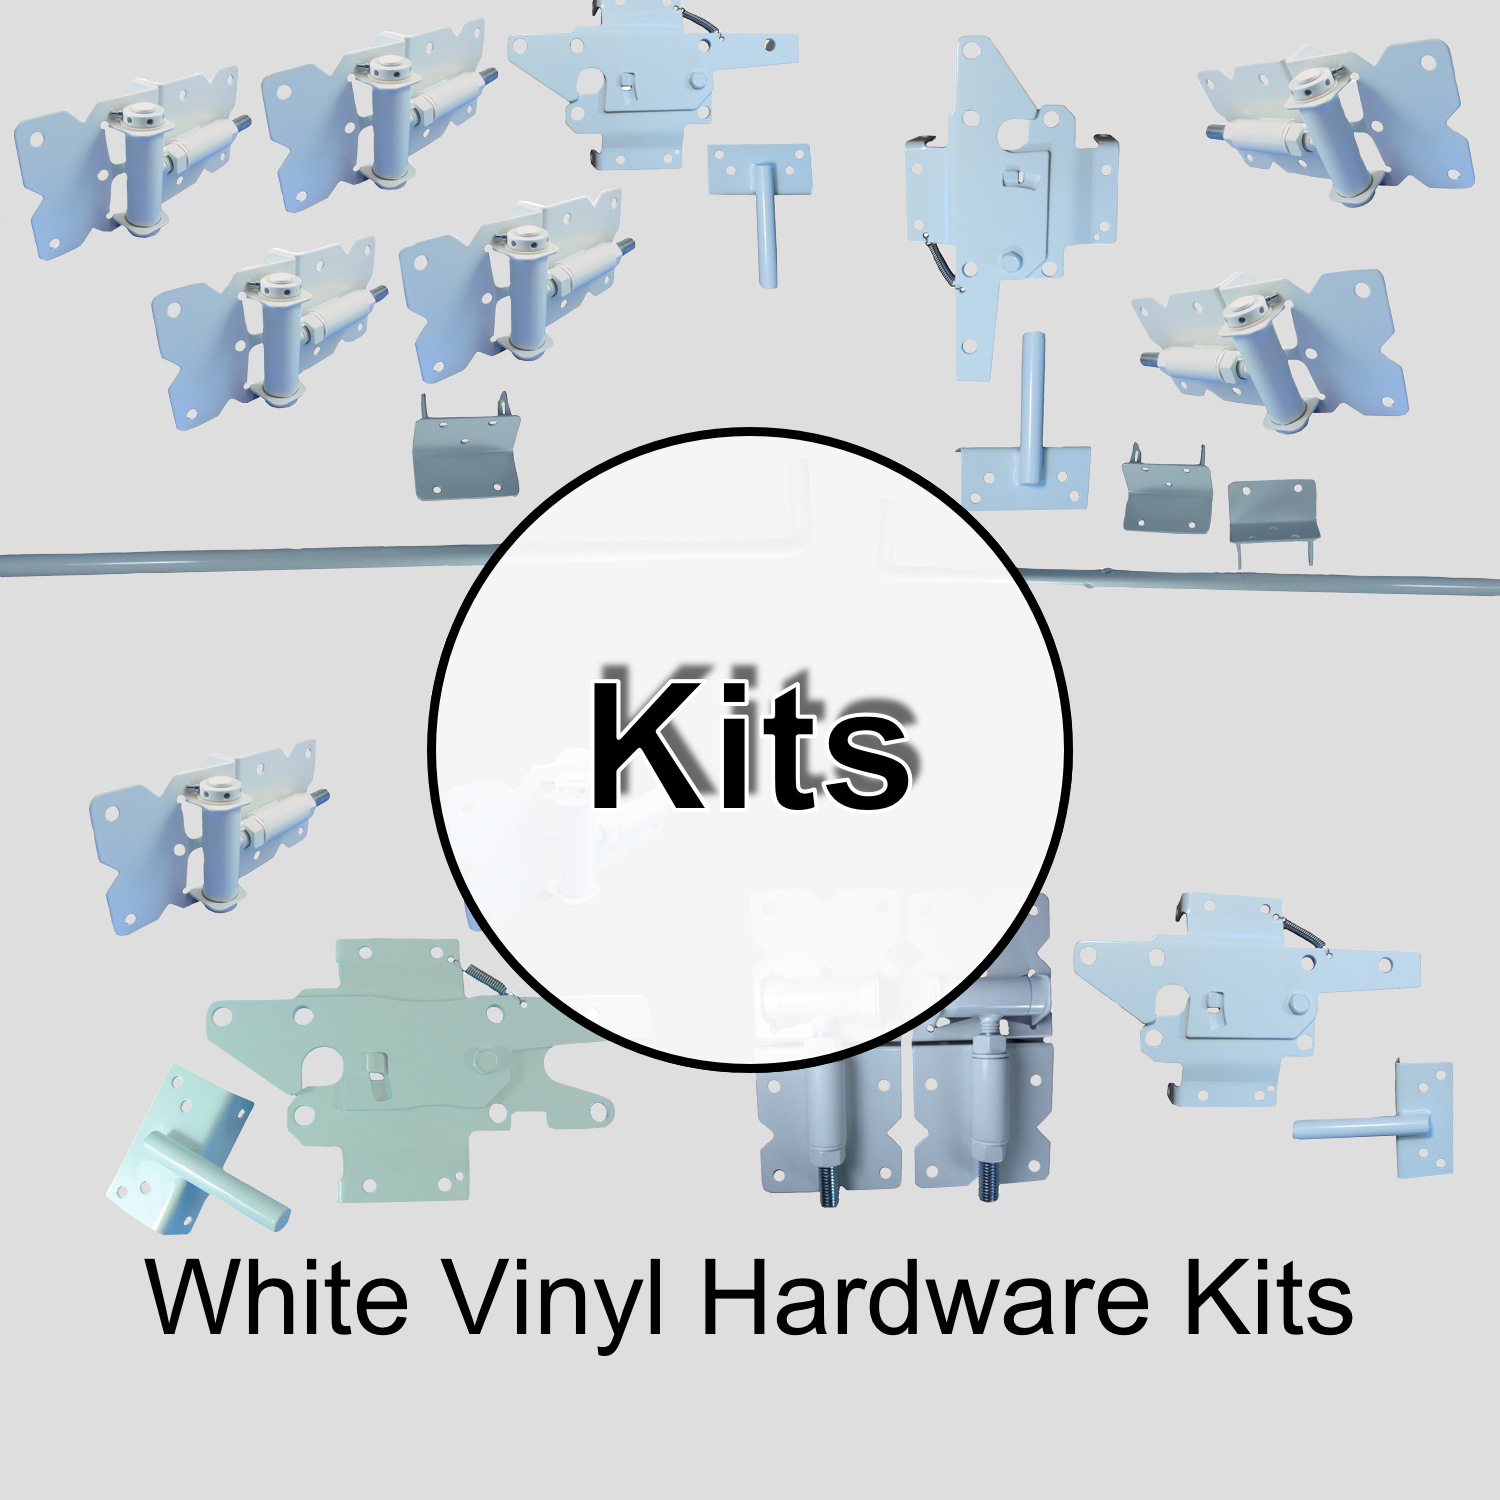 White Vinyl Gate Hardware Kits